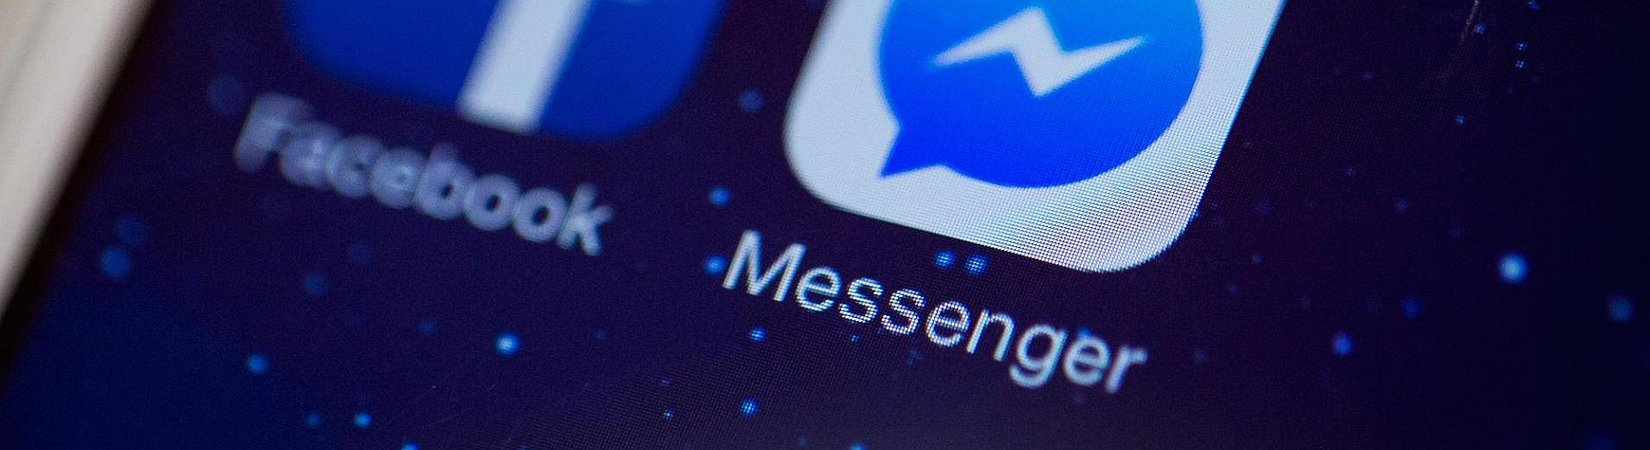 New Mining Malware Infects Facebook Messenger Users